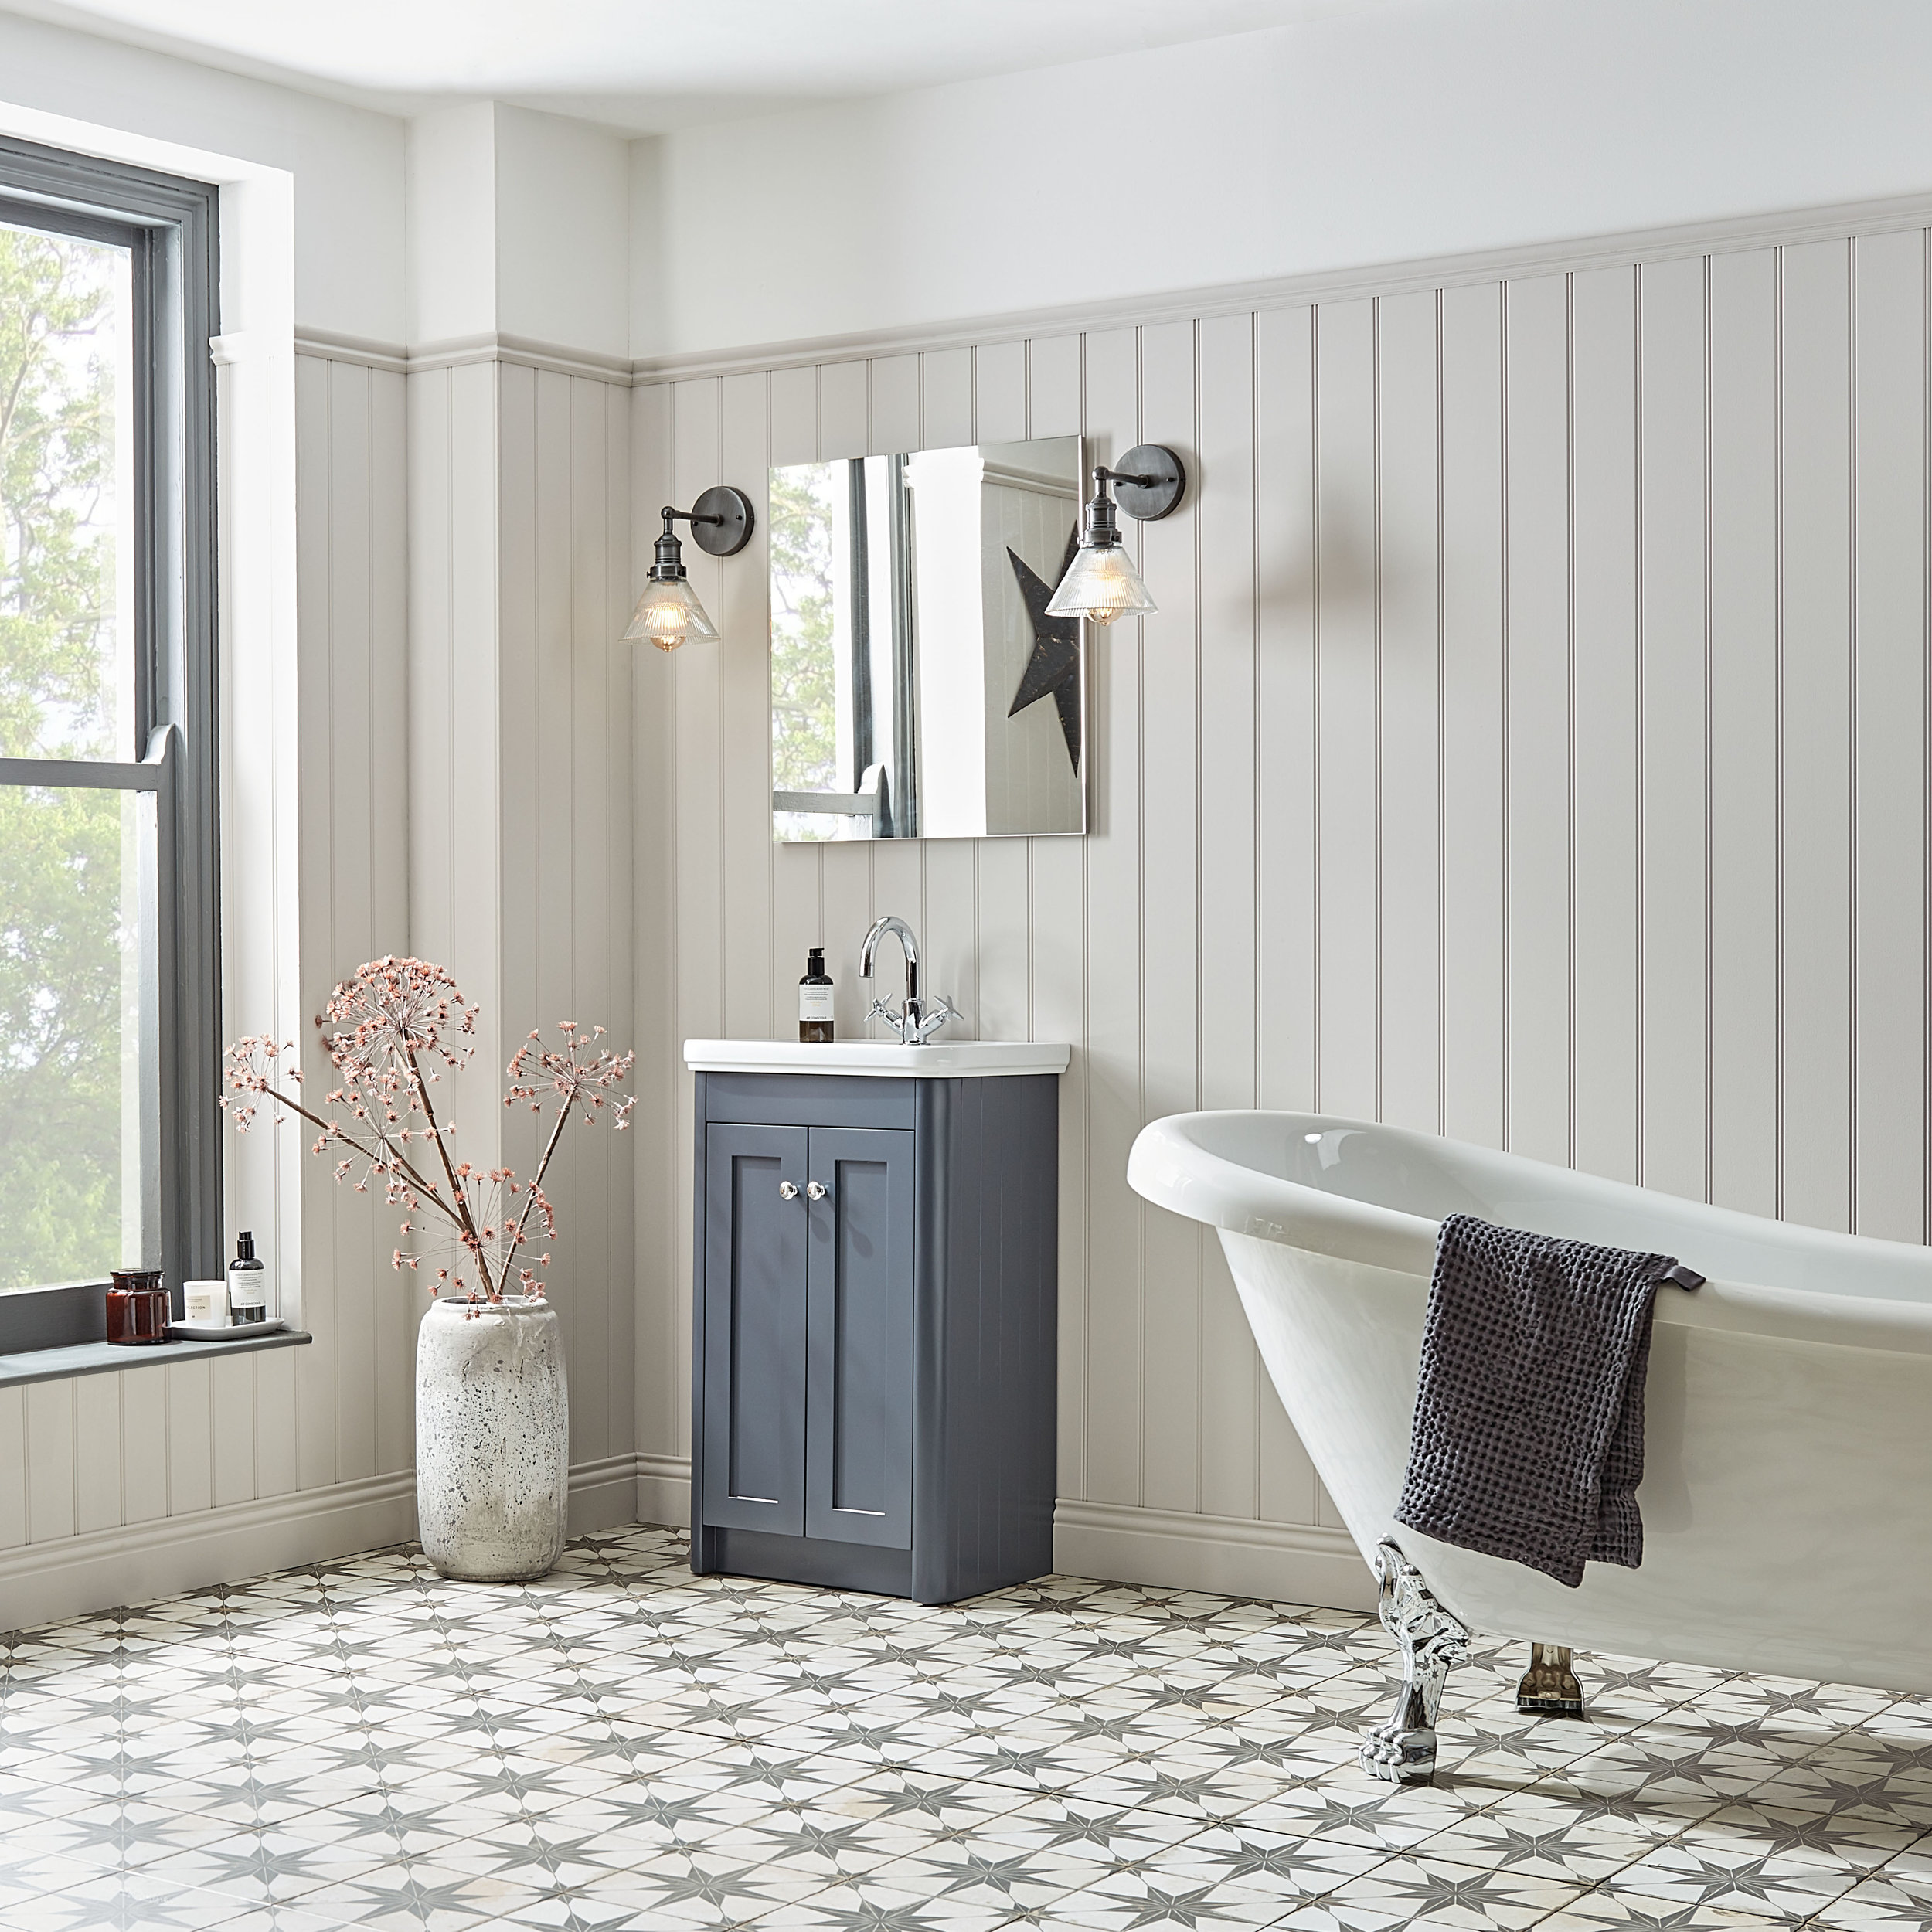 Halcyon by R2 Vanity in Midnoght Grey  with Astra vinyl tiles.